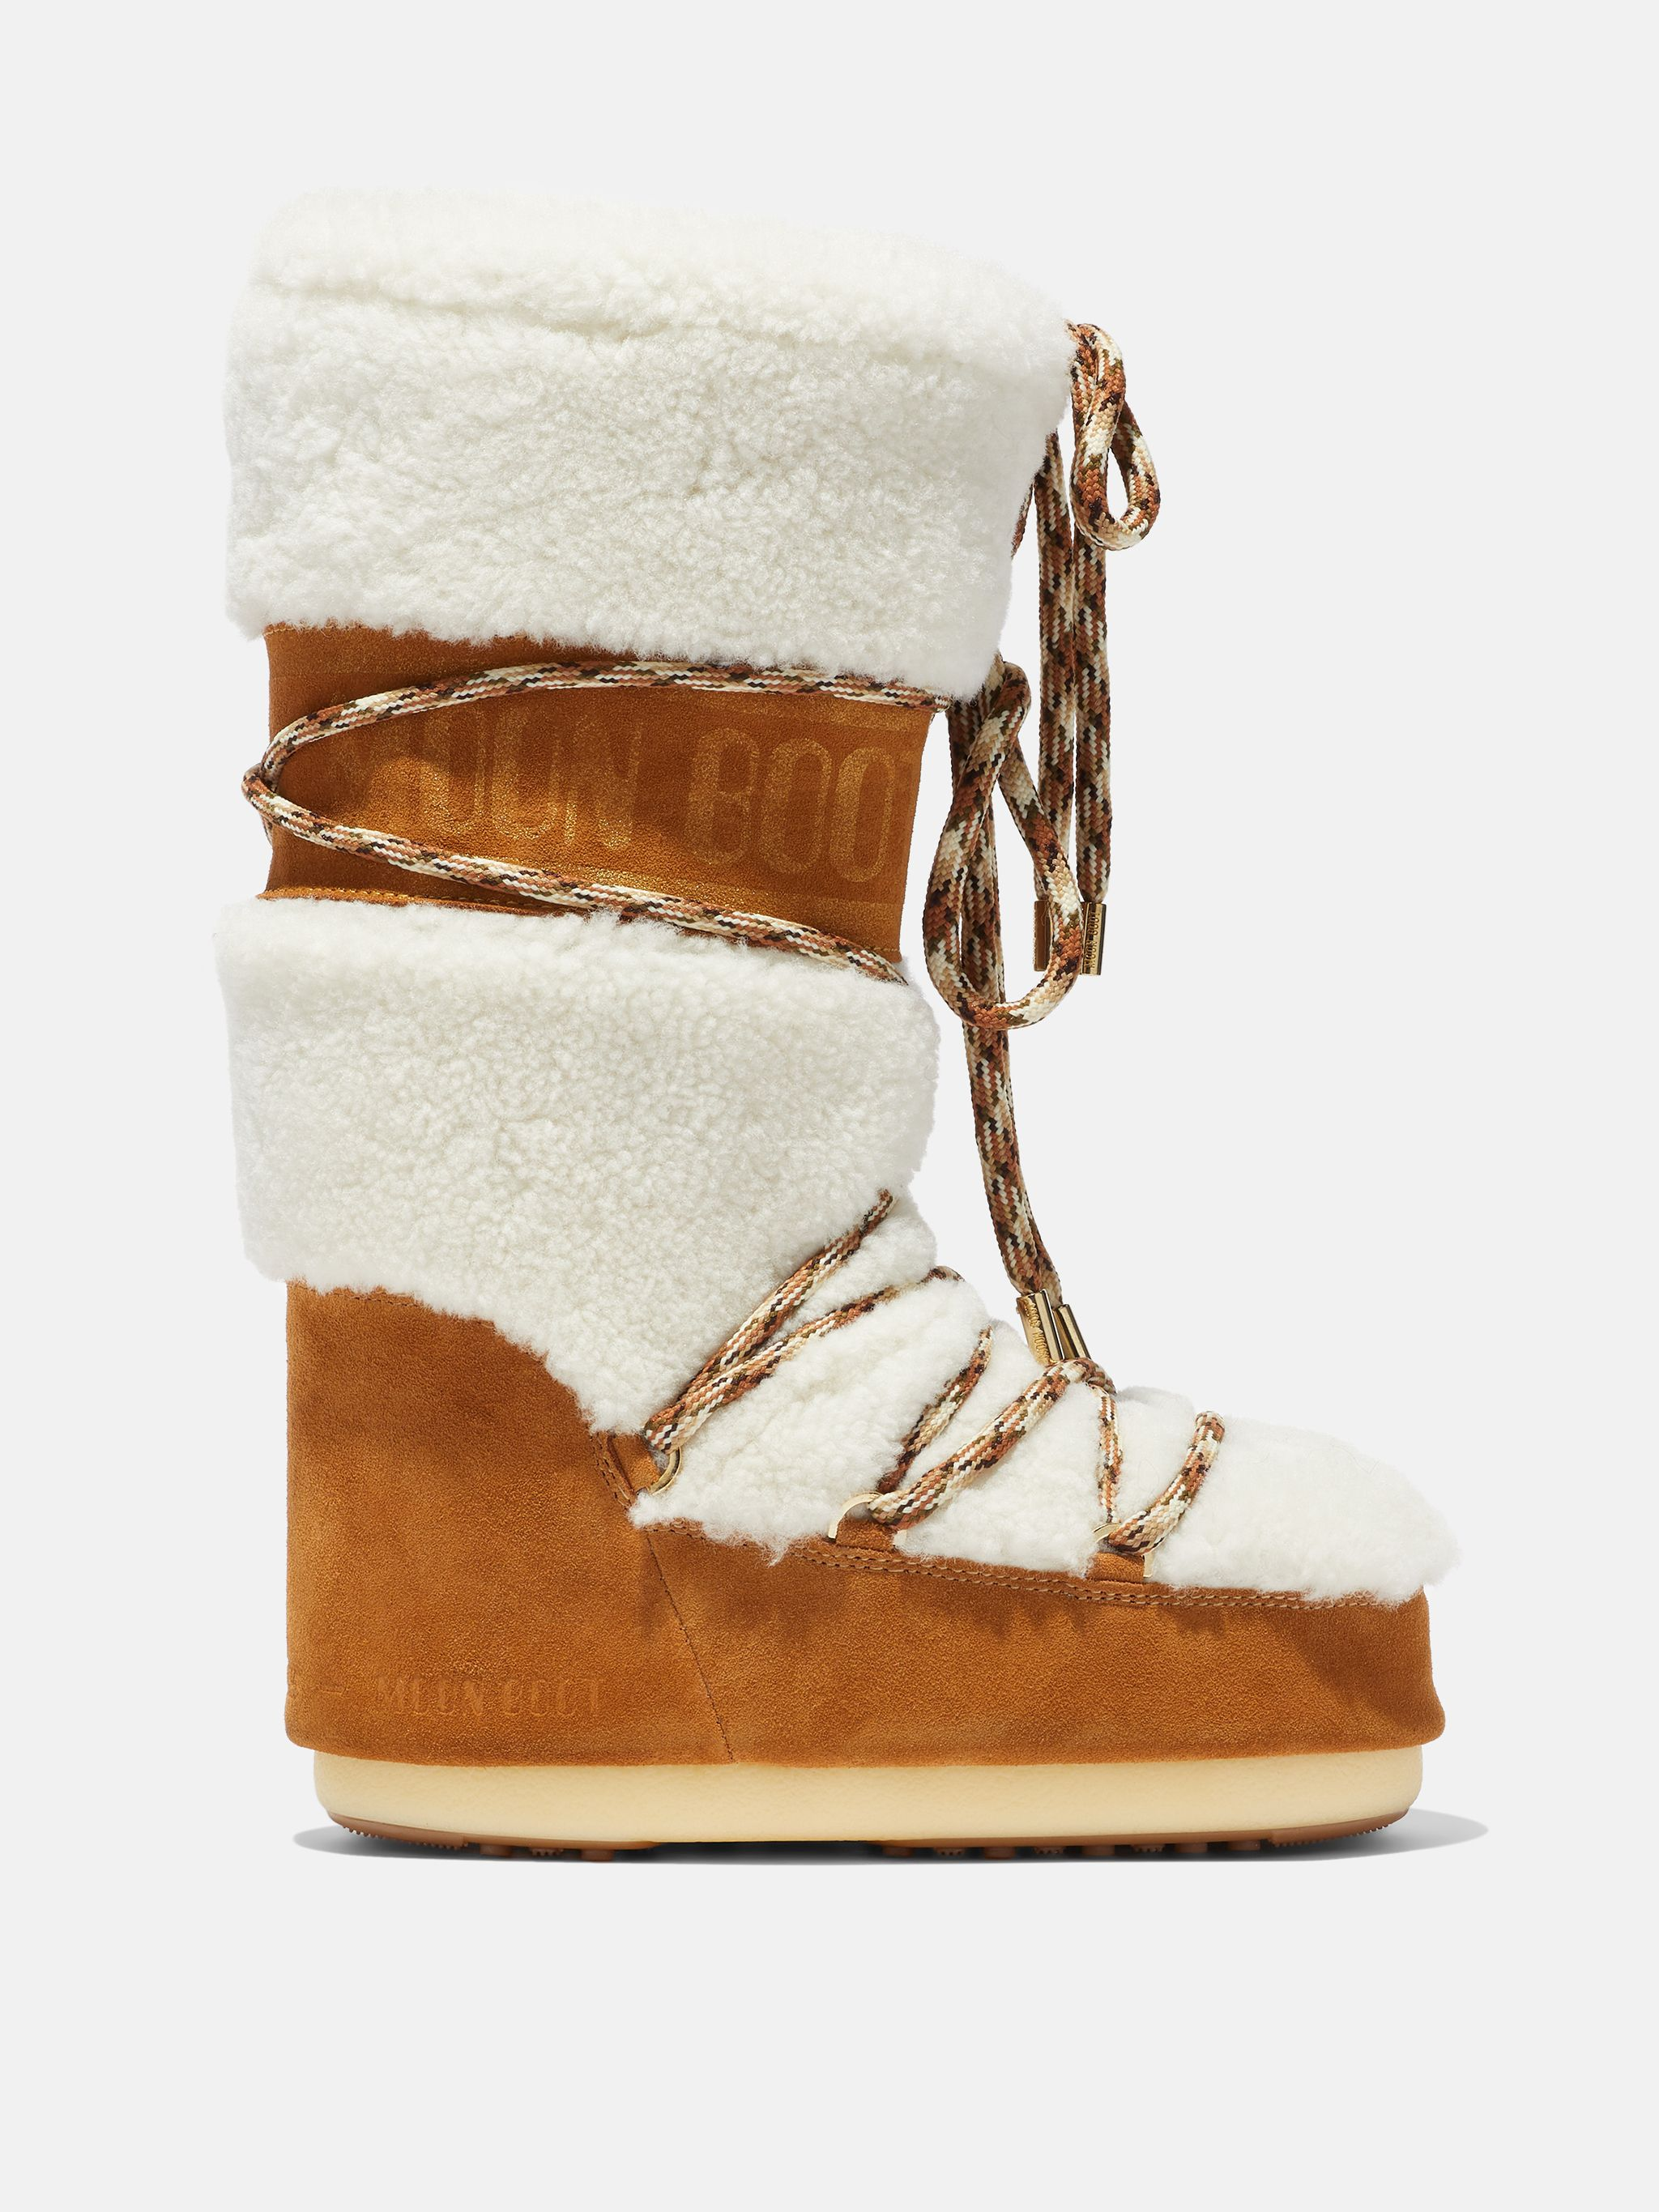 LAB69 ICON PANNA IN SHEARLING